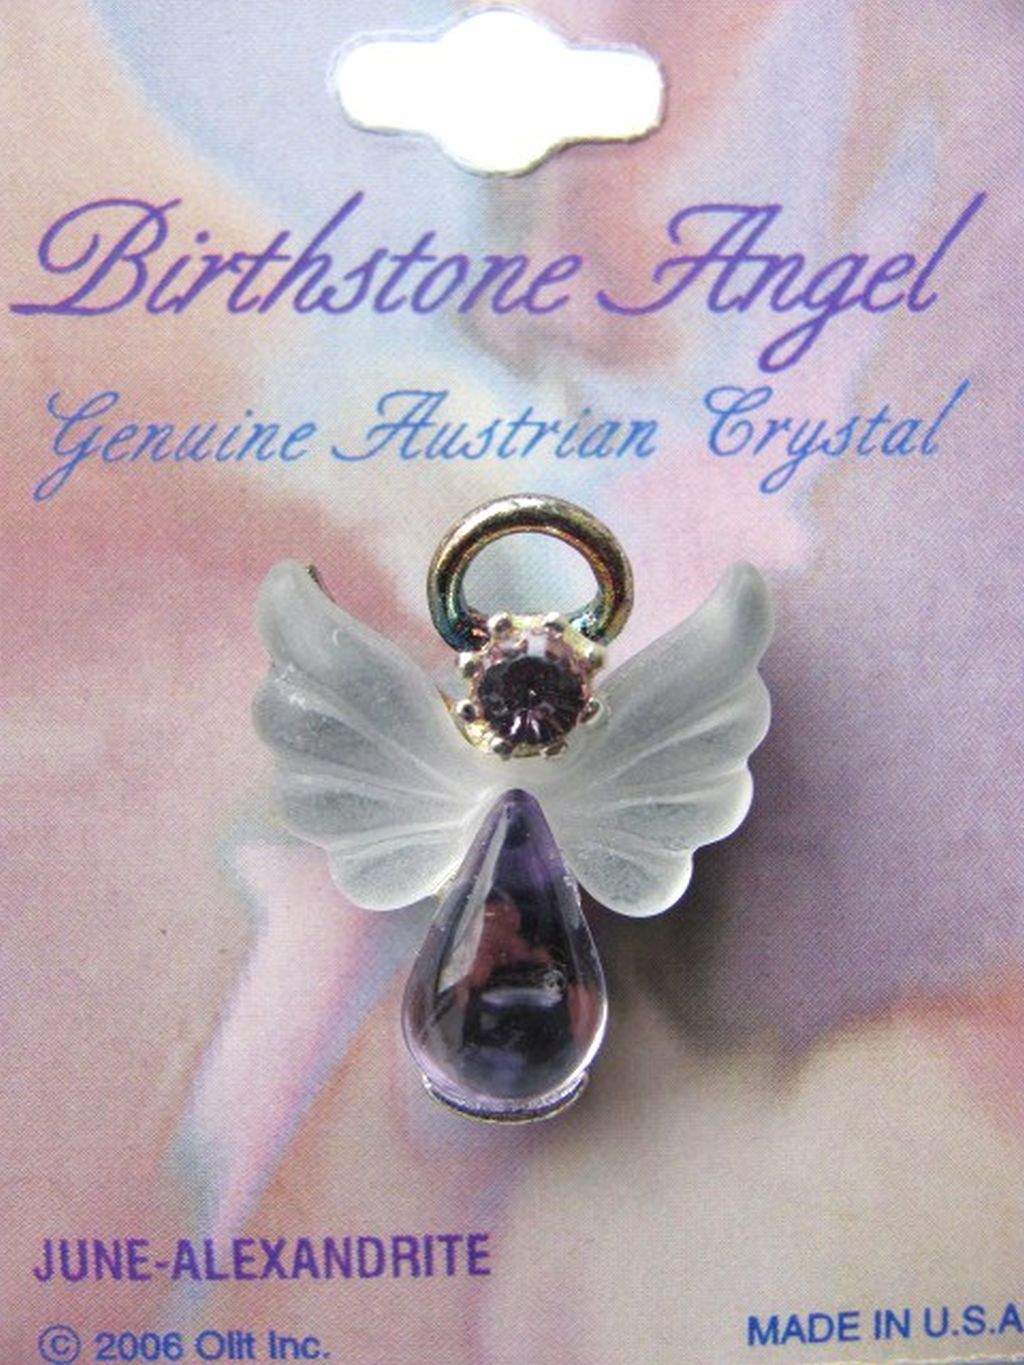 Alexandrite June Birthstone Angel Pin, Genuine Austrian Crystals